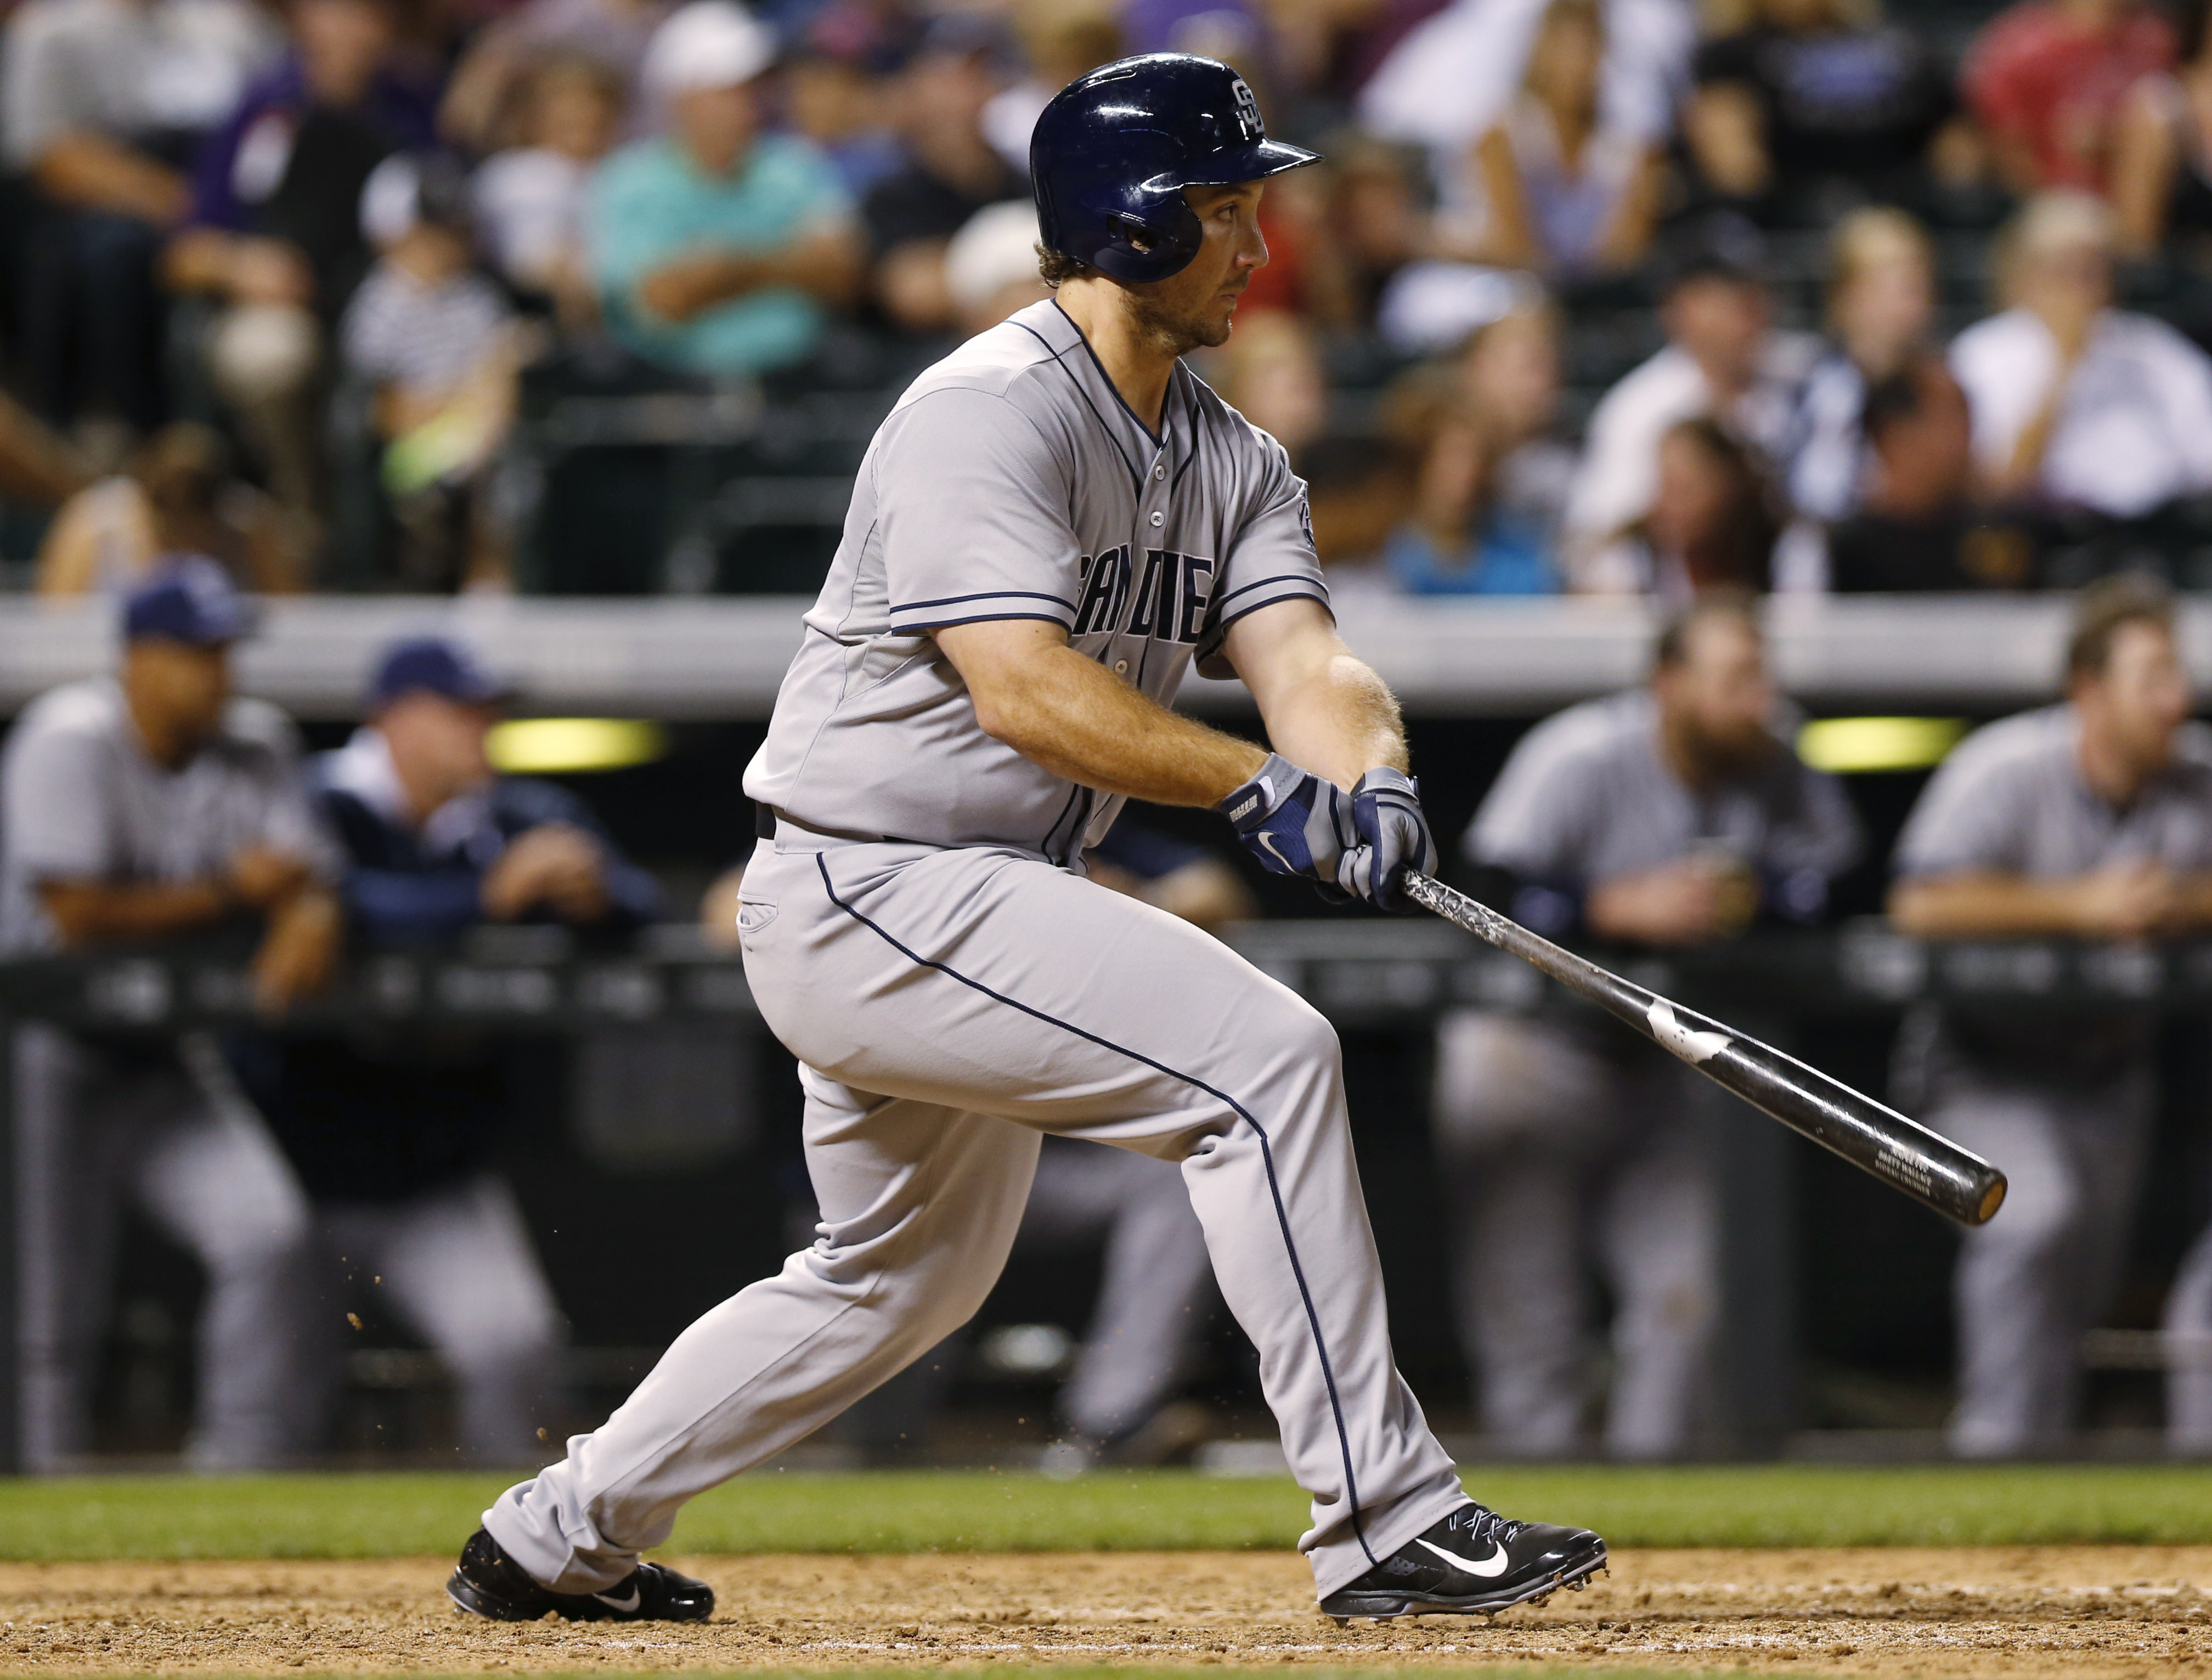 San Diego Padres pinch-hitter Brett Wallace watches his single that drove in the go-ahead run off Colorado Rockies relief pitcher Tommy Kahnle during the ninth inning of a baseball game Saturday, Aug. 15, 2015, in Denver. San Diego won 7-5. (AP Photo/Davi